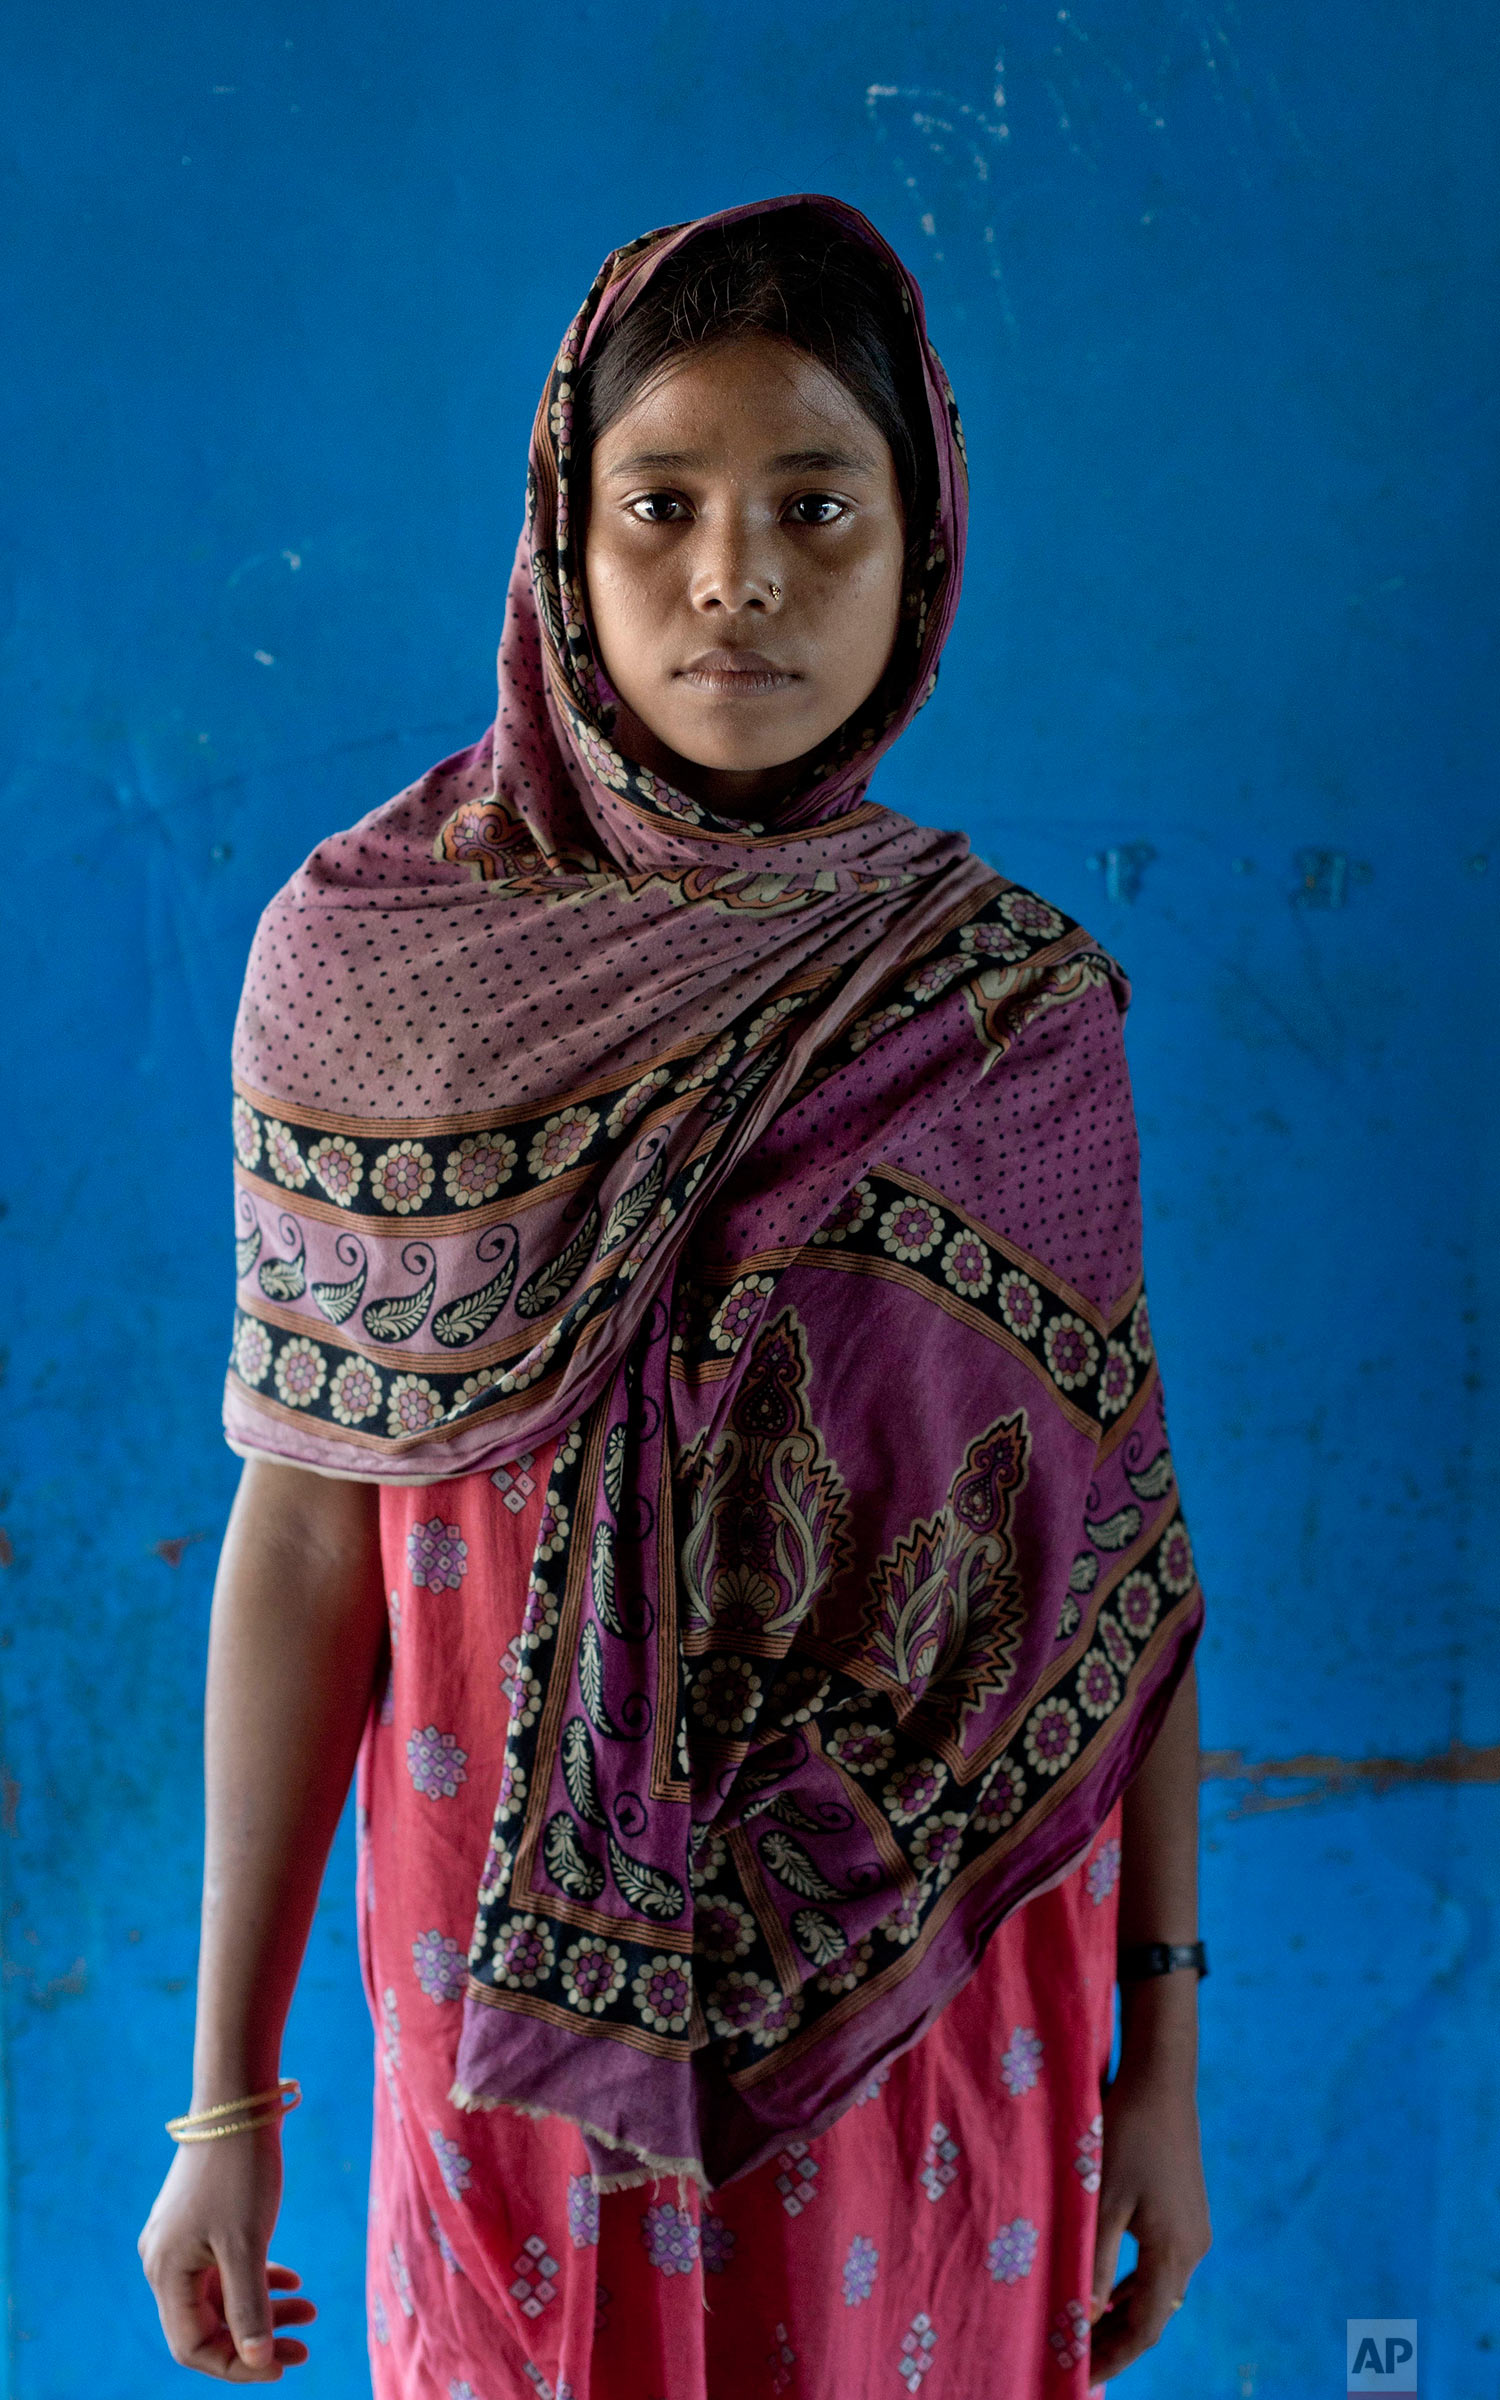 In this Oct. 1, 2017, photo, survivor of a boat capsize Fatima Khatun, from Myanmar's Moidaung Village, stands for a photograph at a transit shelter at Kutupalong camp for newly arrived Rohingya refugees in Bangladesh. Fatima lost her mother and two siblings when the boat they were traveling in, to escape from Myanmar, capsized on Sept. 28. She survived along with her father Lalu Mia and two other siblings. (AP Photo/Gemunu Amarasinghe)